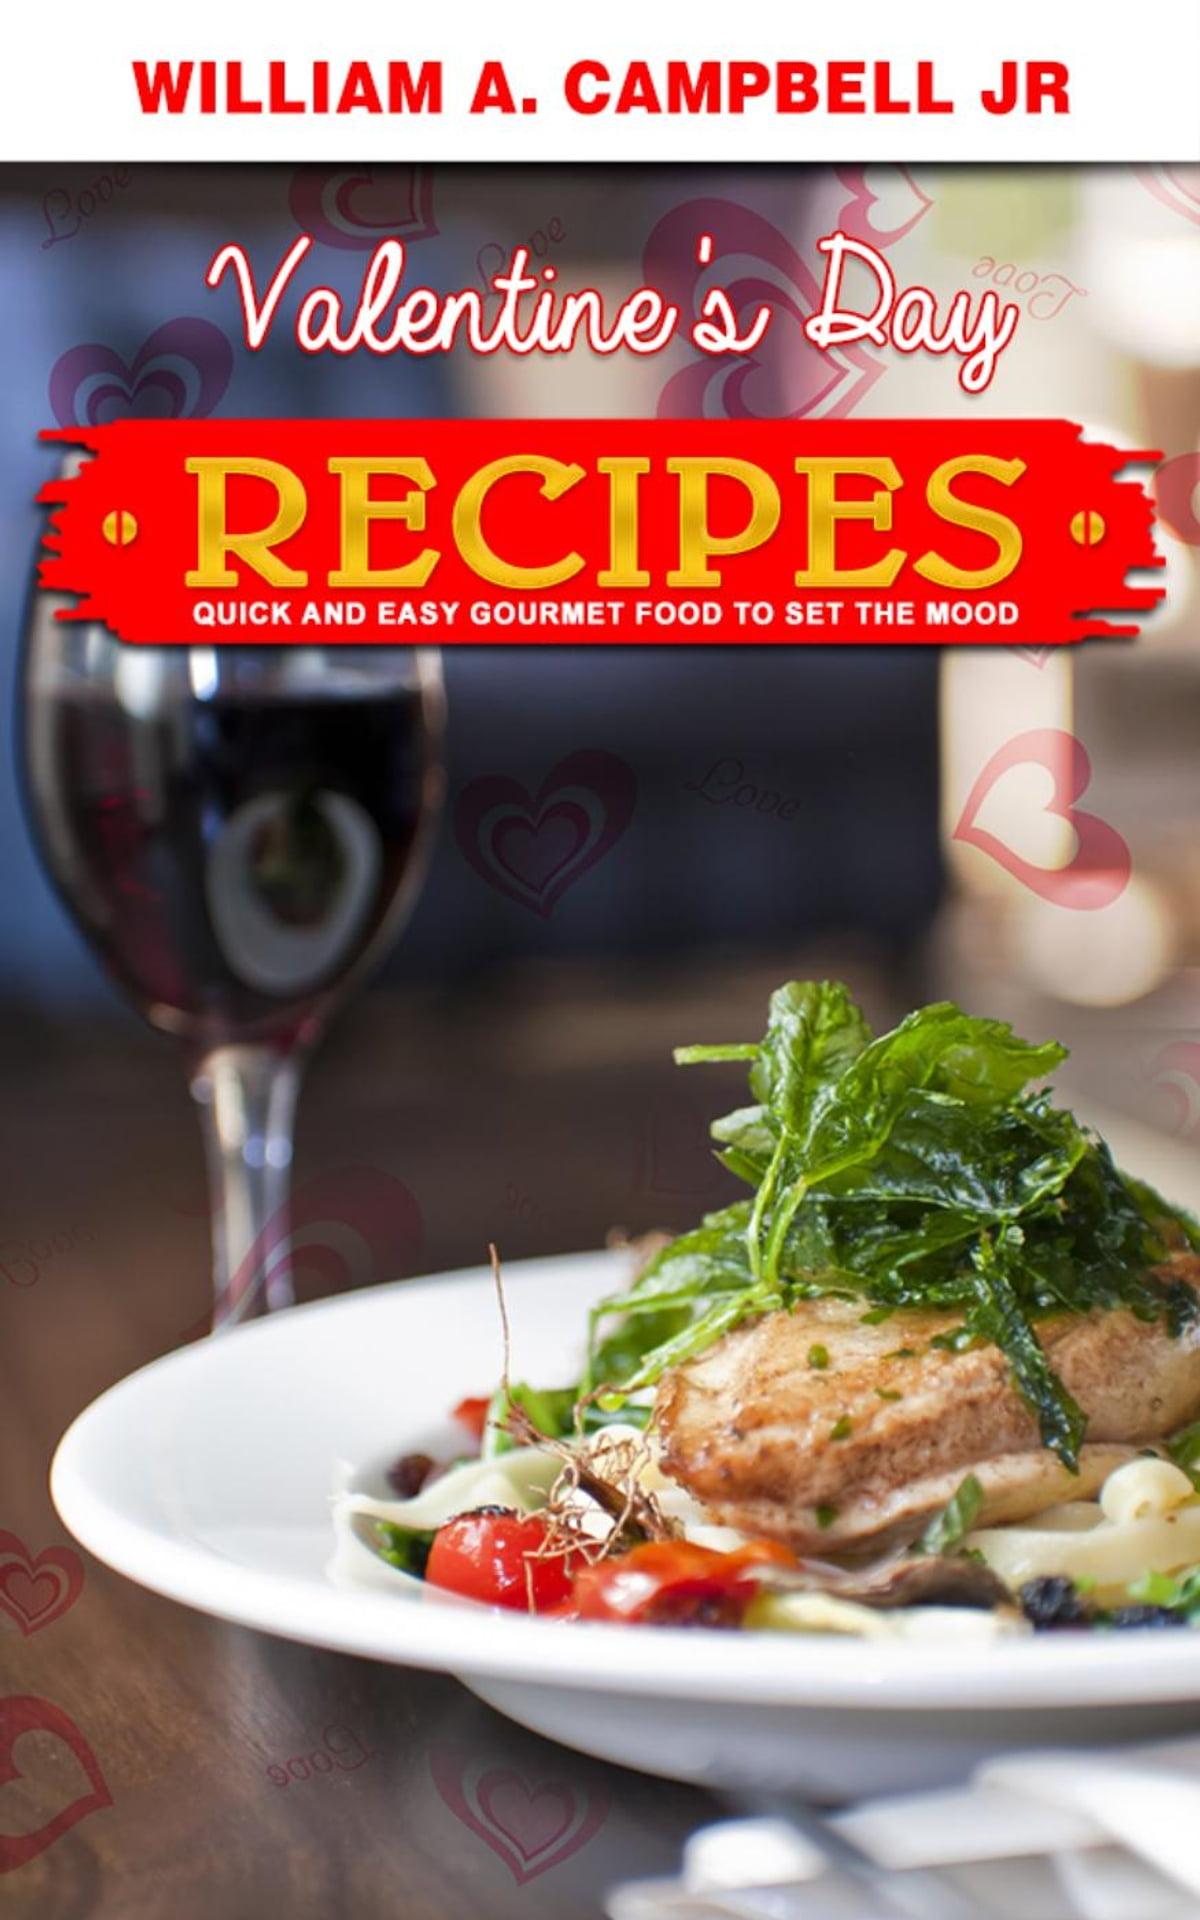 Valentines day recipes quick and easy gourmet food to set the mood valentines day recipes quick and easy gourmet food to set the mood ebook by william ampbell jr 9781507057506 rakuten kobo forumfinder Images